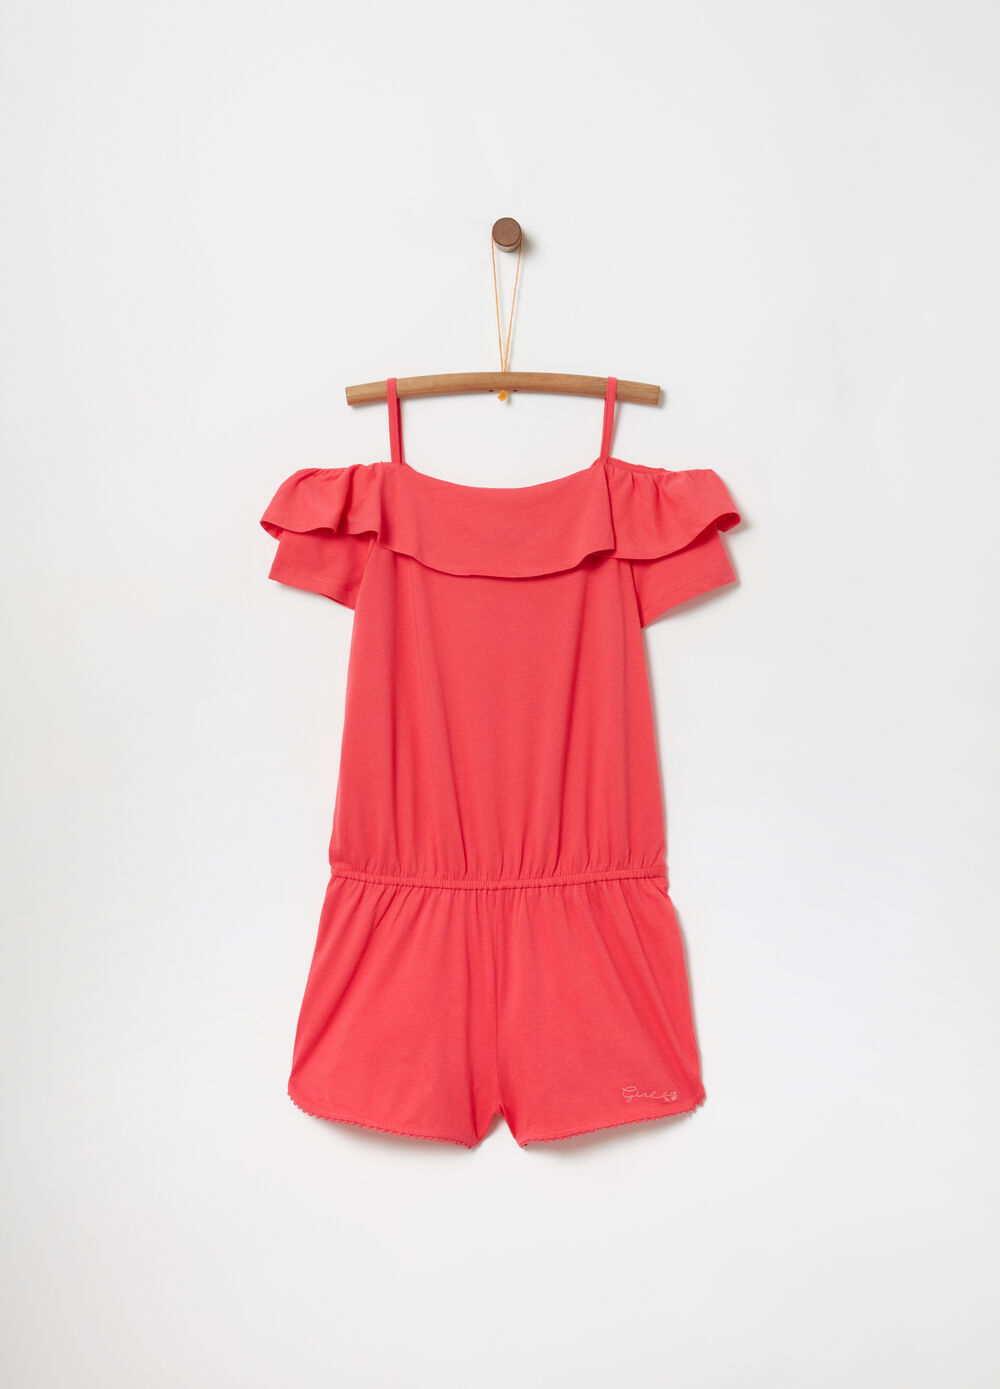 Short playsuit with bare shoulders and flounce